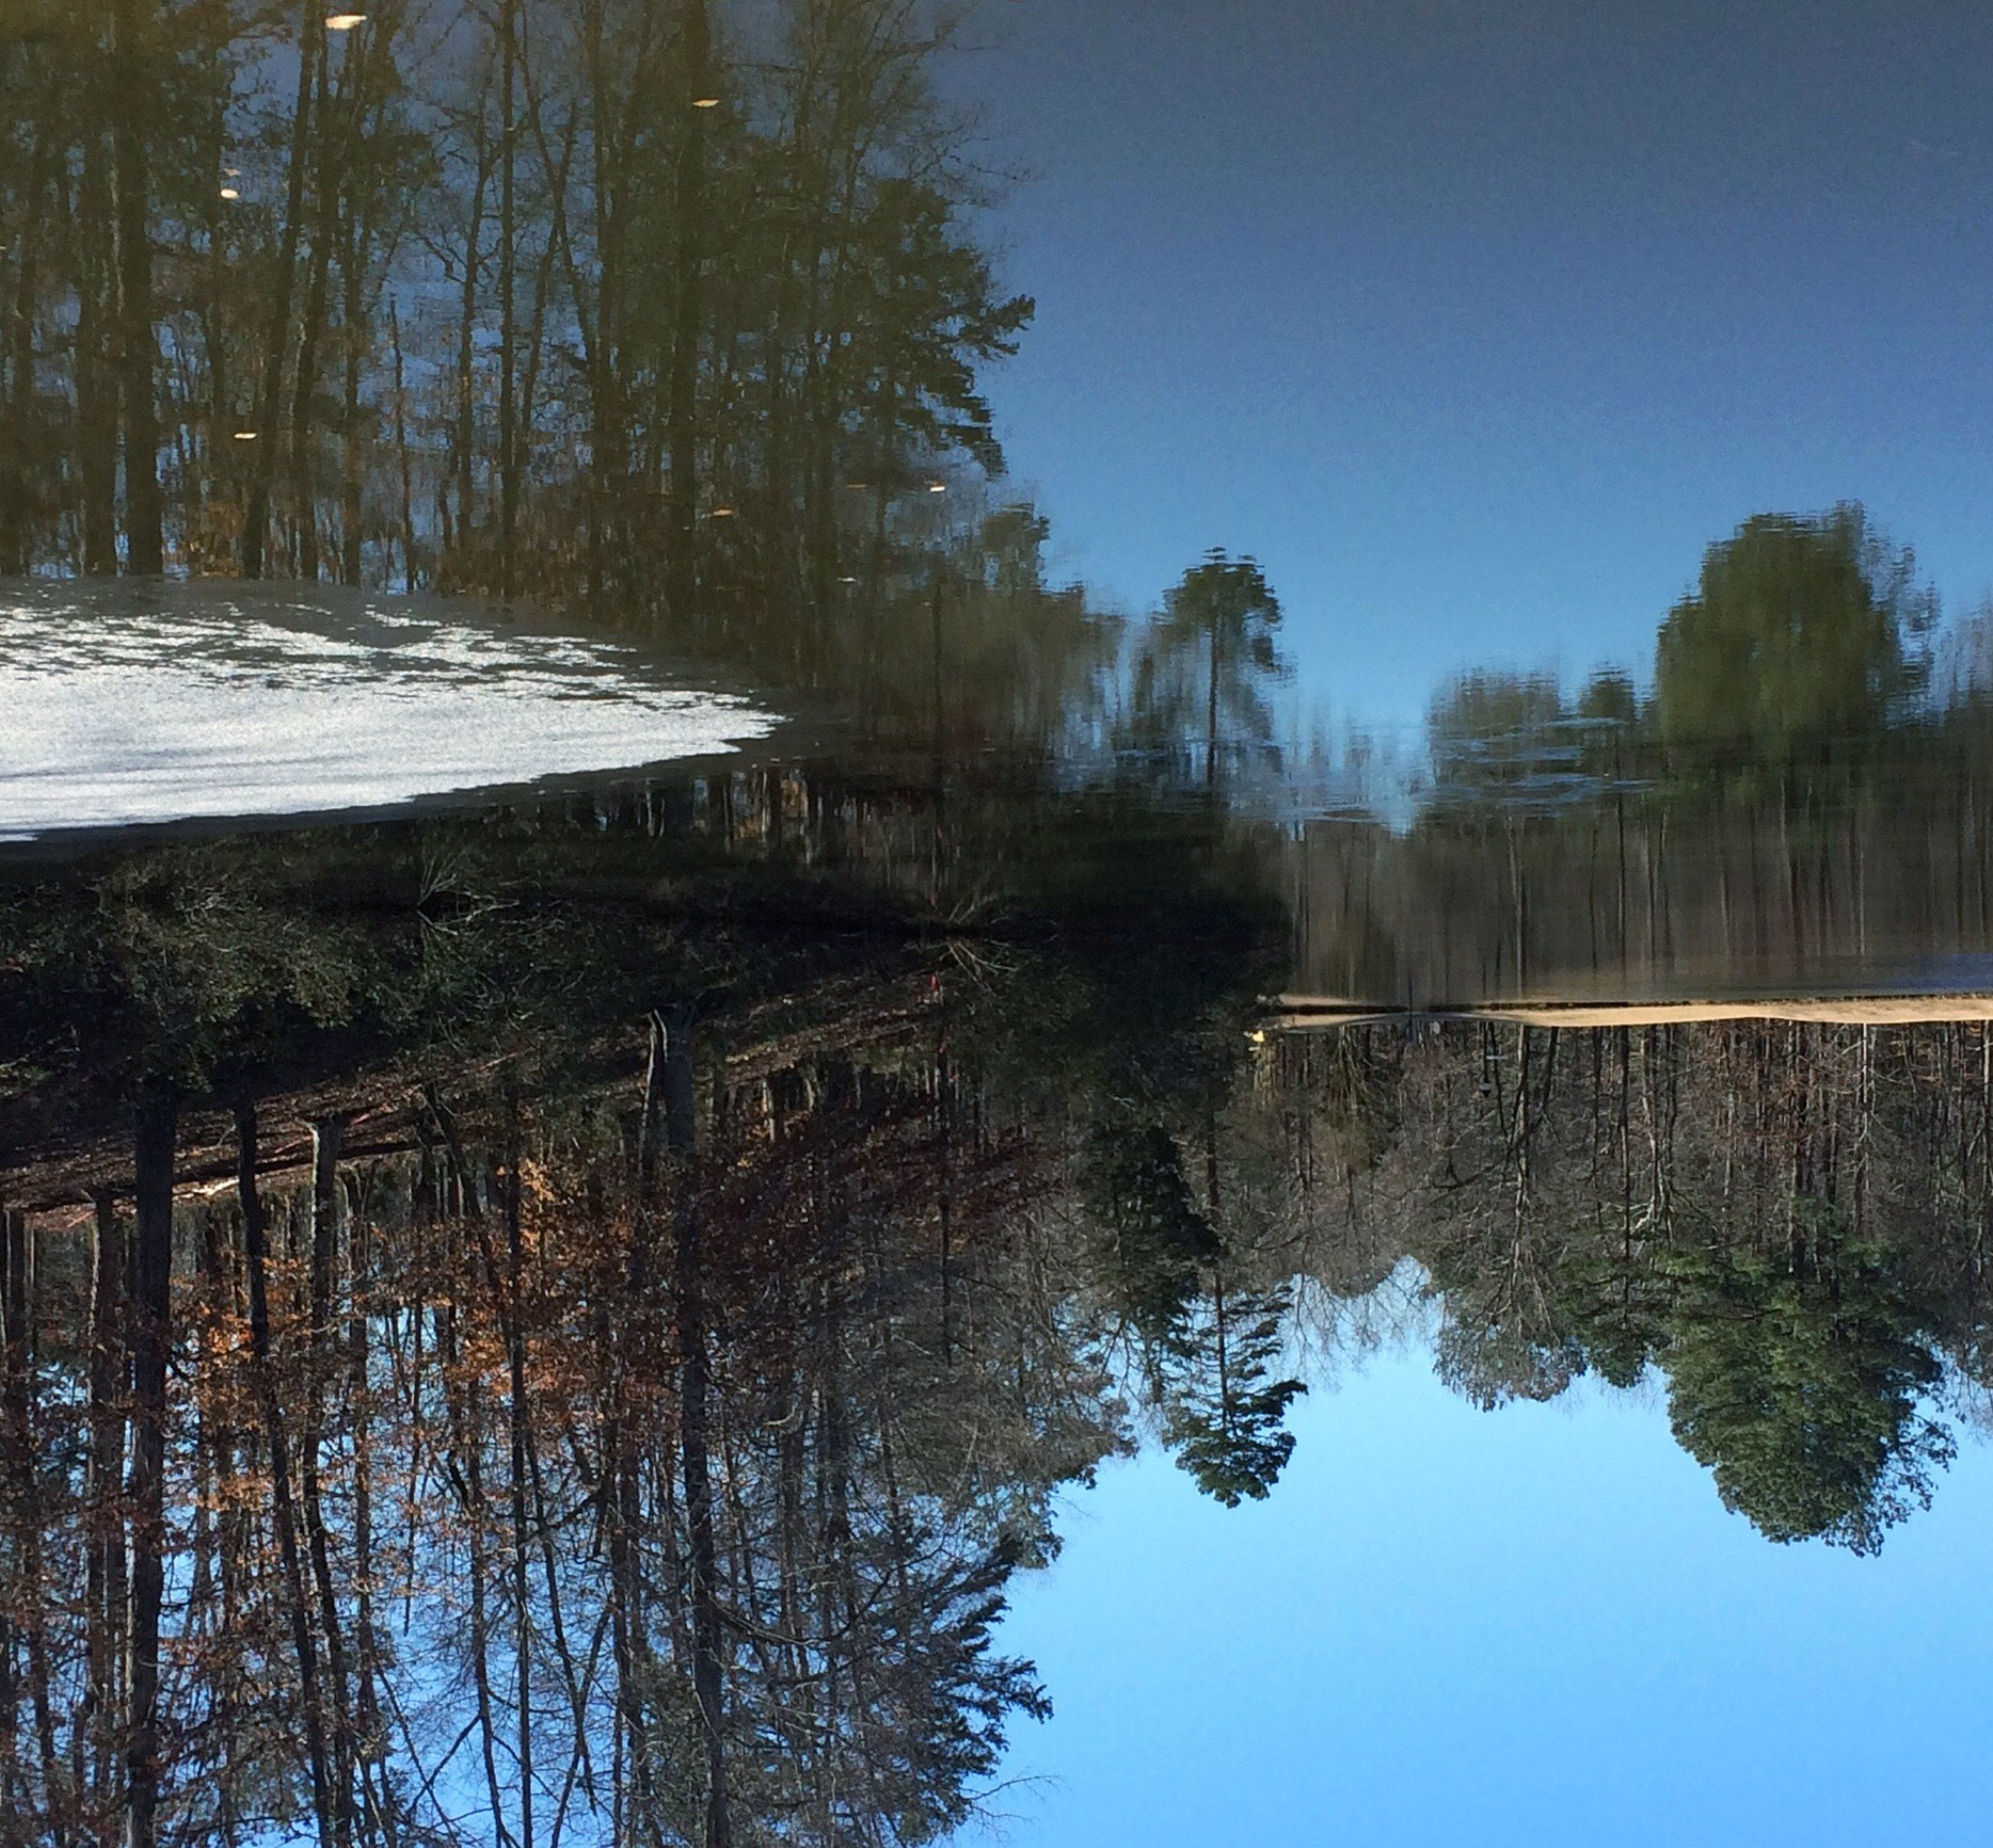 water, tree, reflection, lake, tranquility, tranquil scene, clear sky, scenics, beauty in nature, nature, winter, cold temperature, snow, waterfront, non-urban scene, day, season, standing water, forest, idyllic